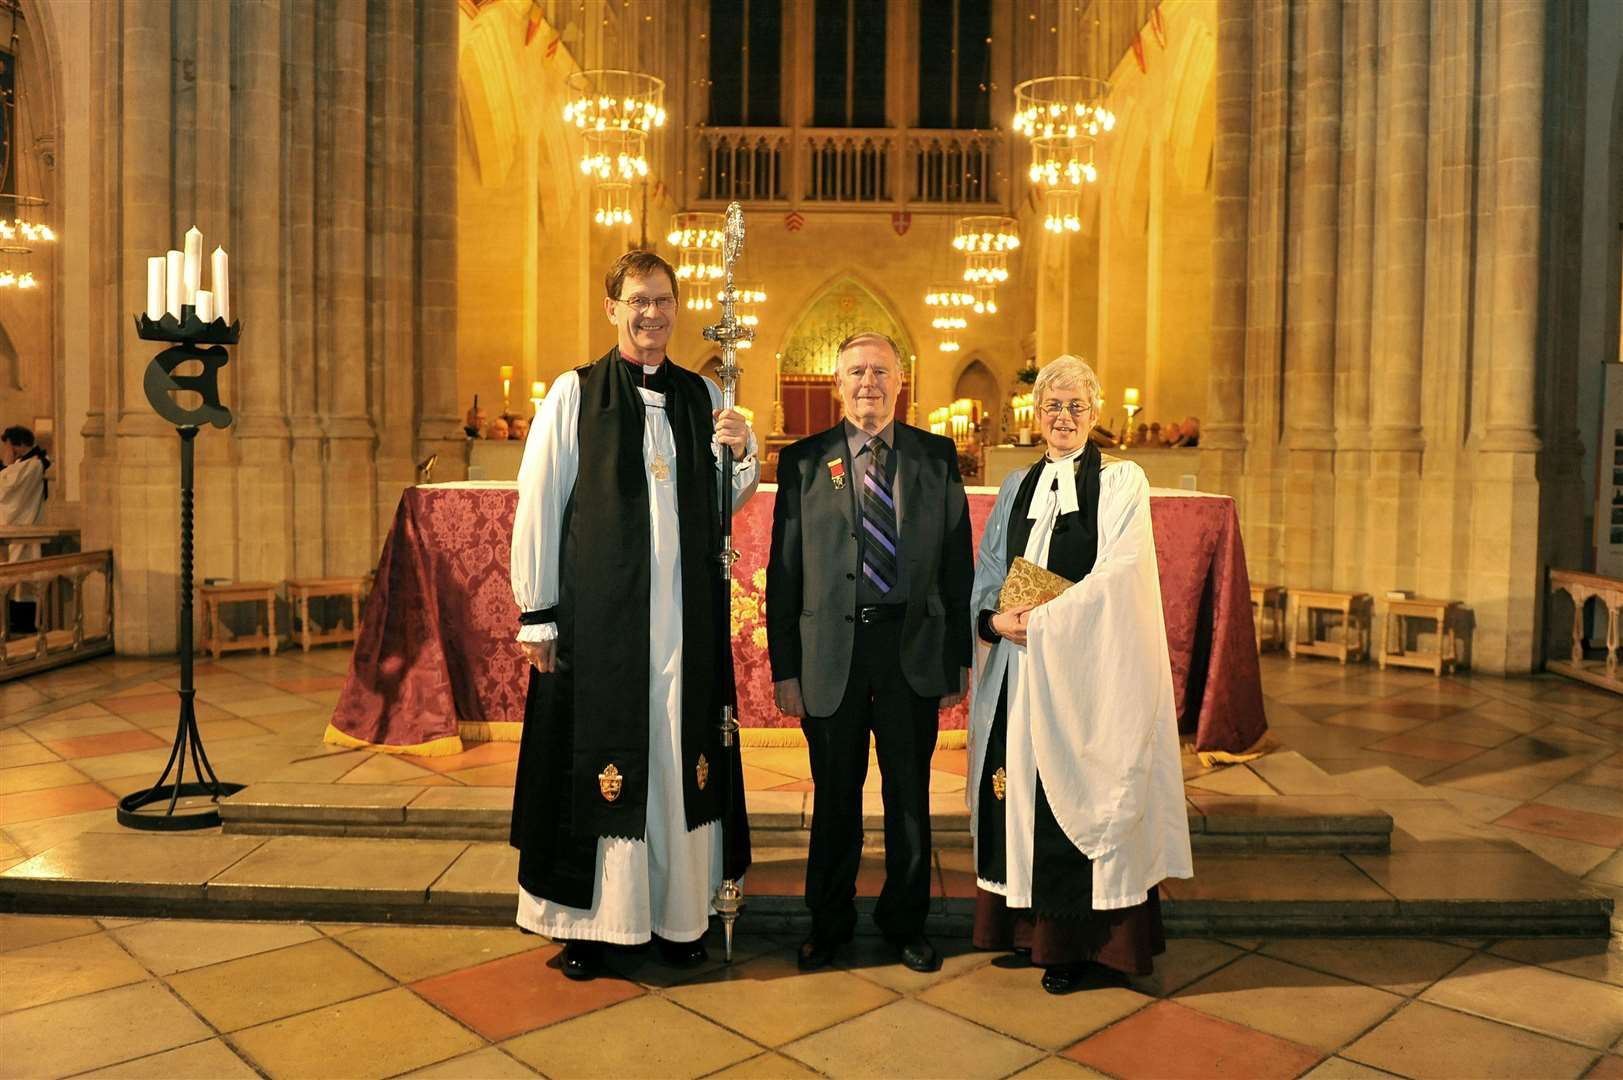 Horry Parsons pictured in 2012 receiving the order of St Edmund at St Edmundsbury Cathedral with The Right Rev Nigel Stock and Very Rev Dr Frances Ward